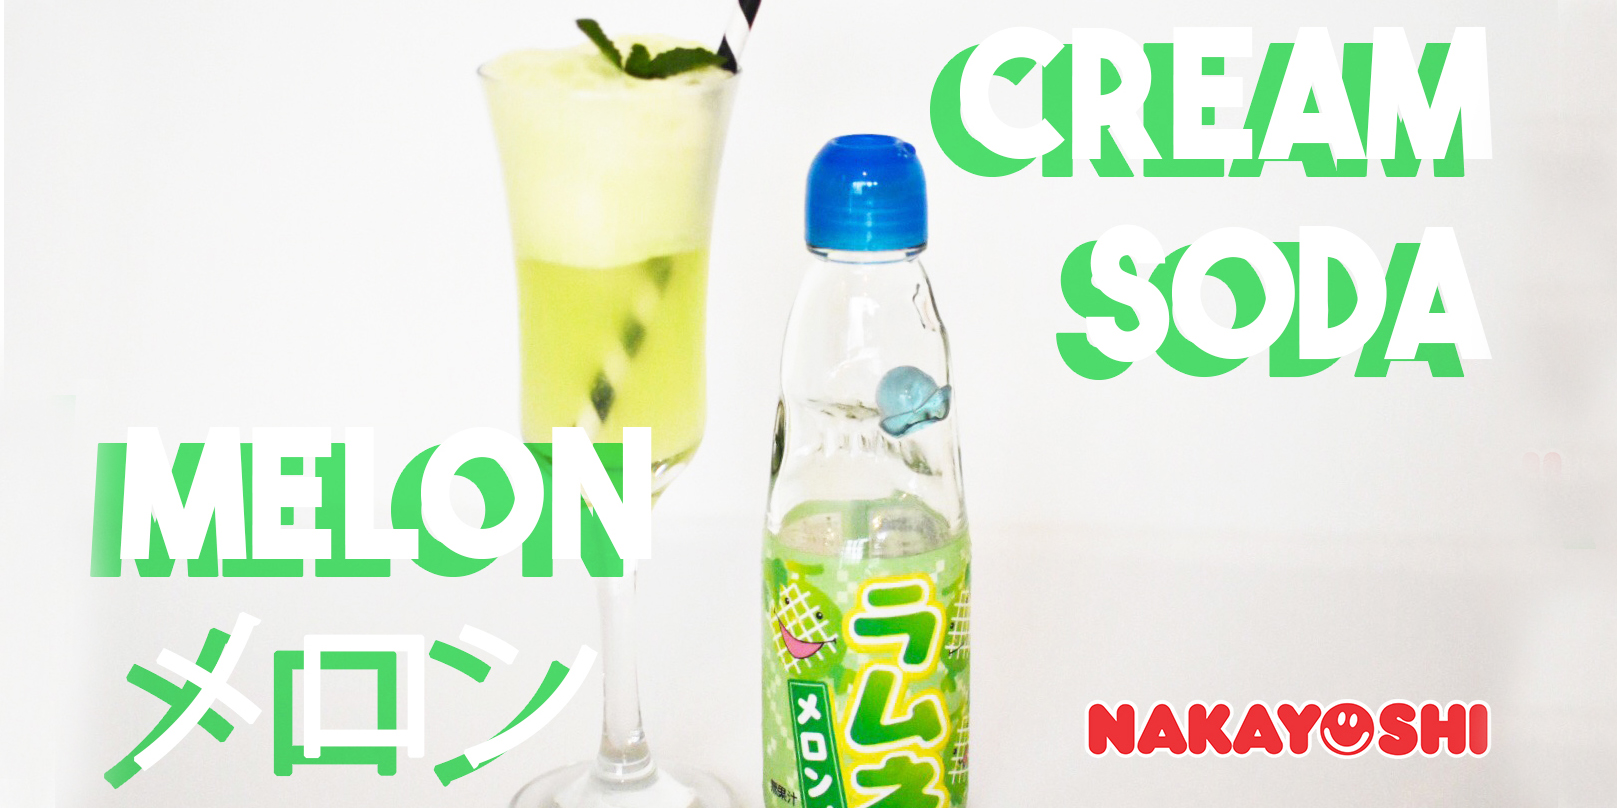 Cream Soda Japonês com Melon Soda